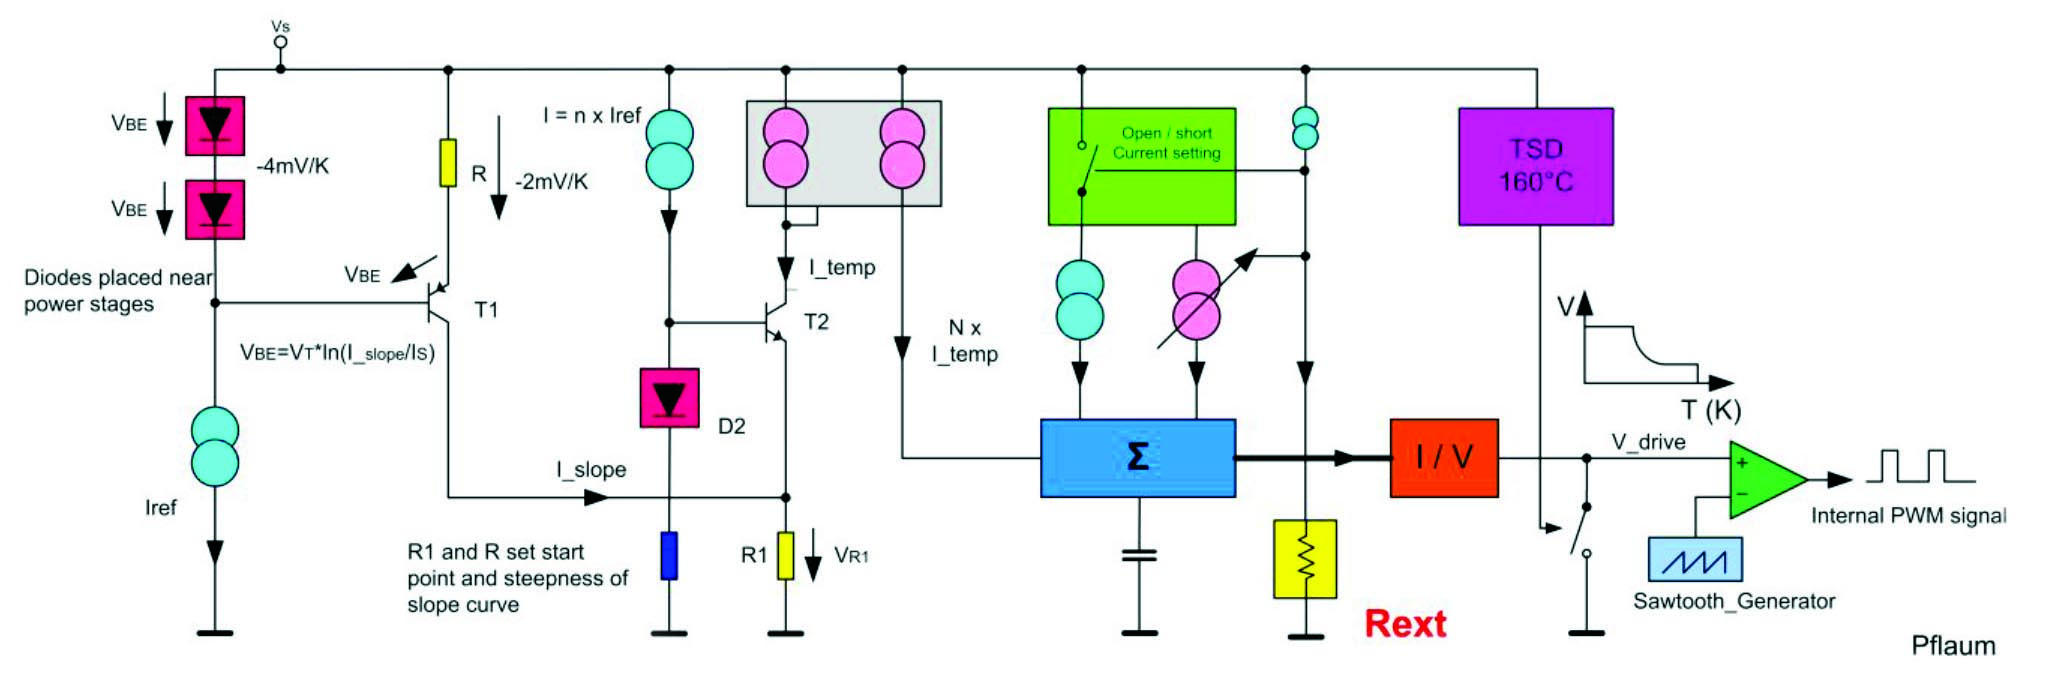 Intelligent Over Temperature Protection For Led Lighting Light Emitting Diode Circuit Of The Control 5 Simplified Block Diagram Smart